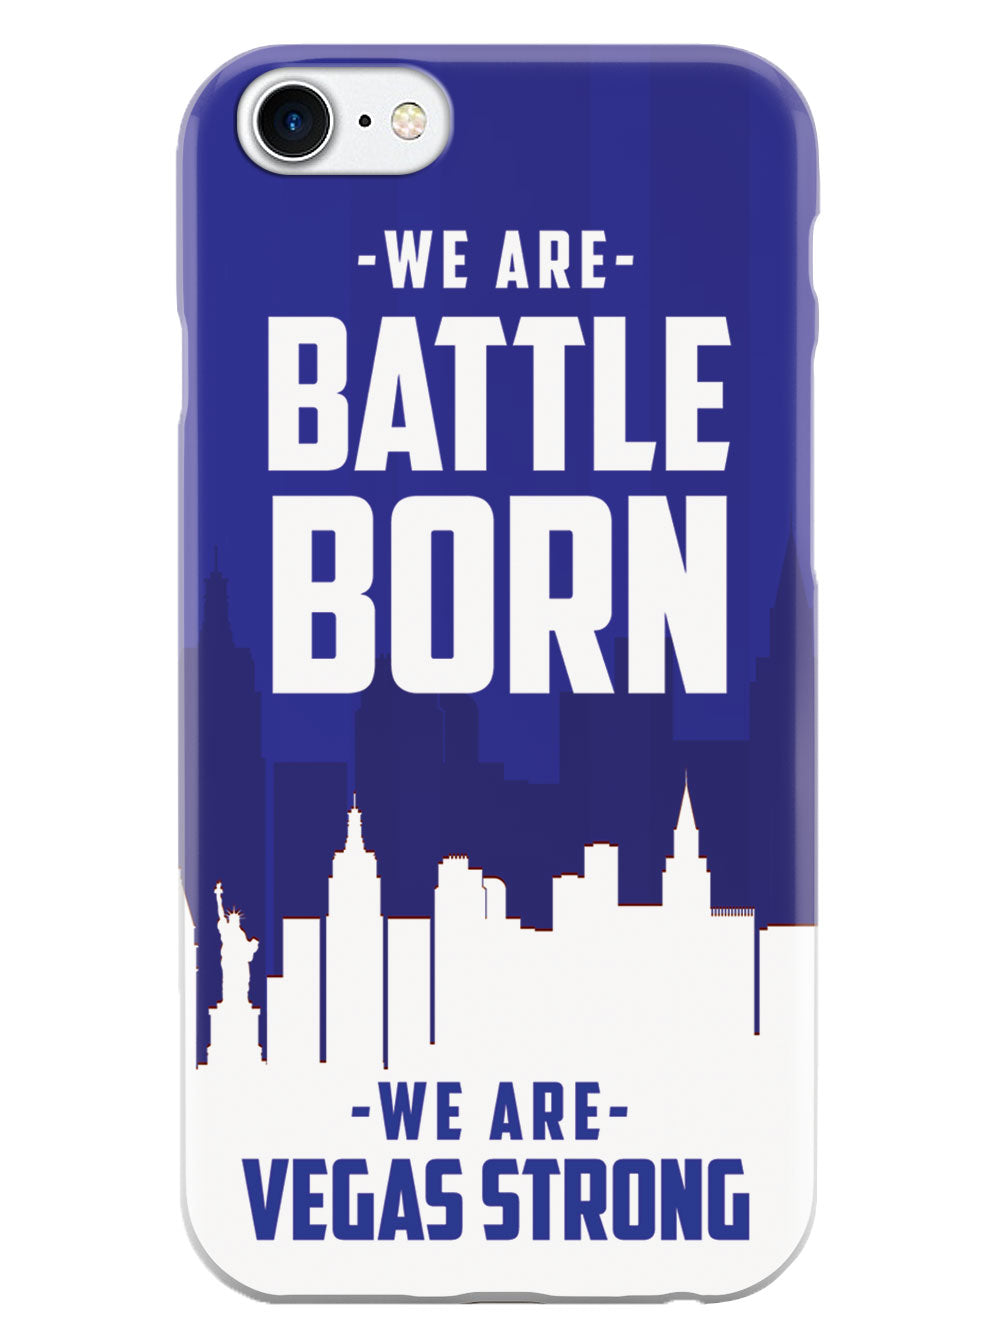 We are Battle Born - We are Vegas Strong Case